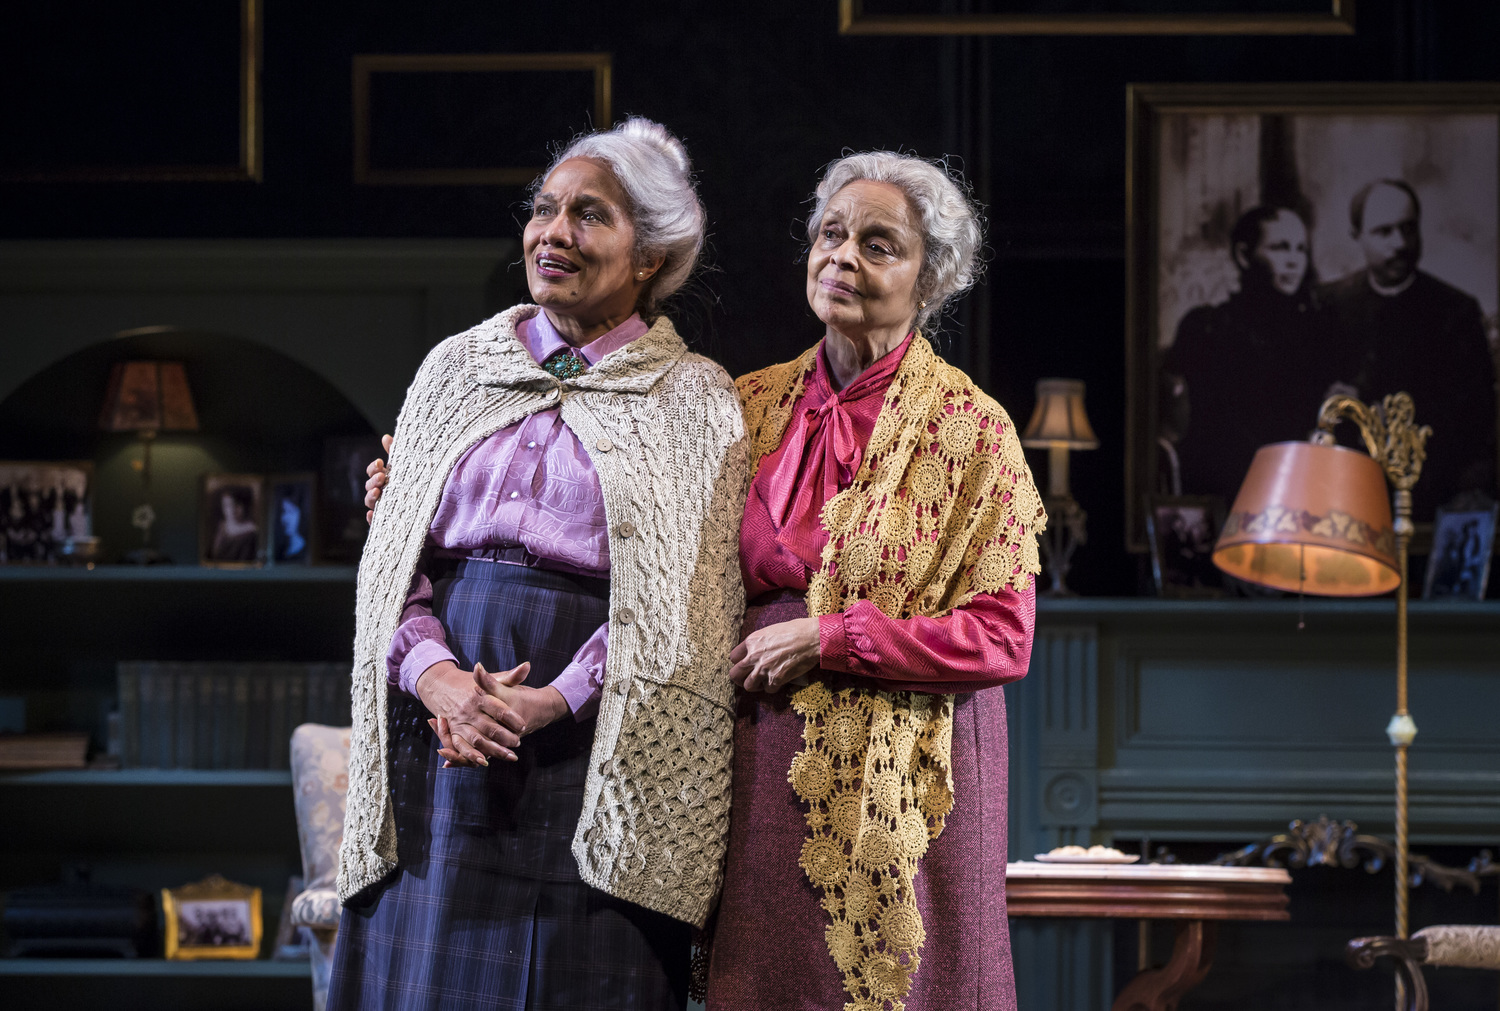 BWW Review: HAVING OUR SAY at Goodman Theatre